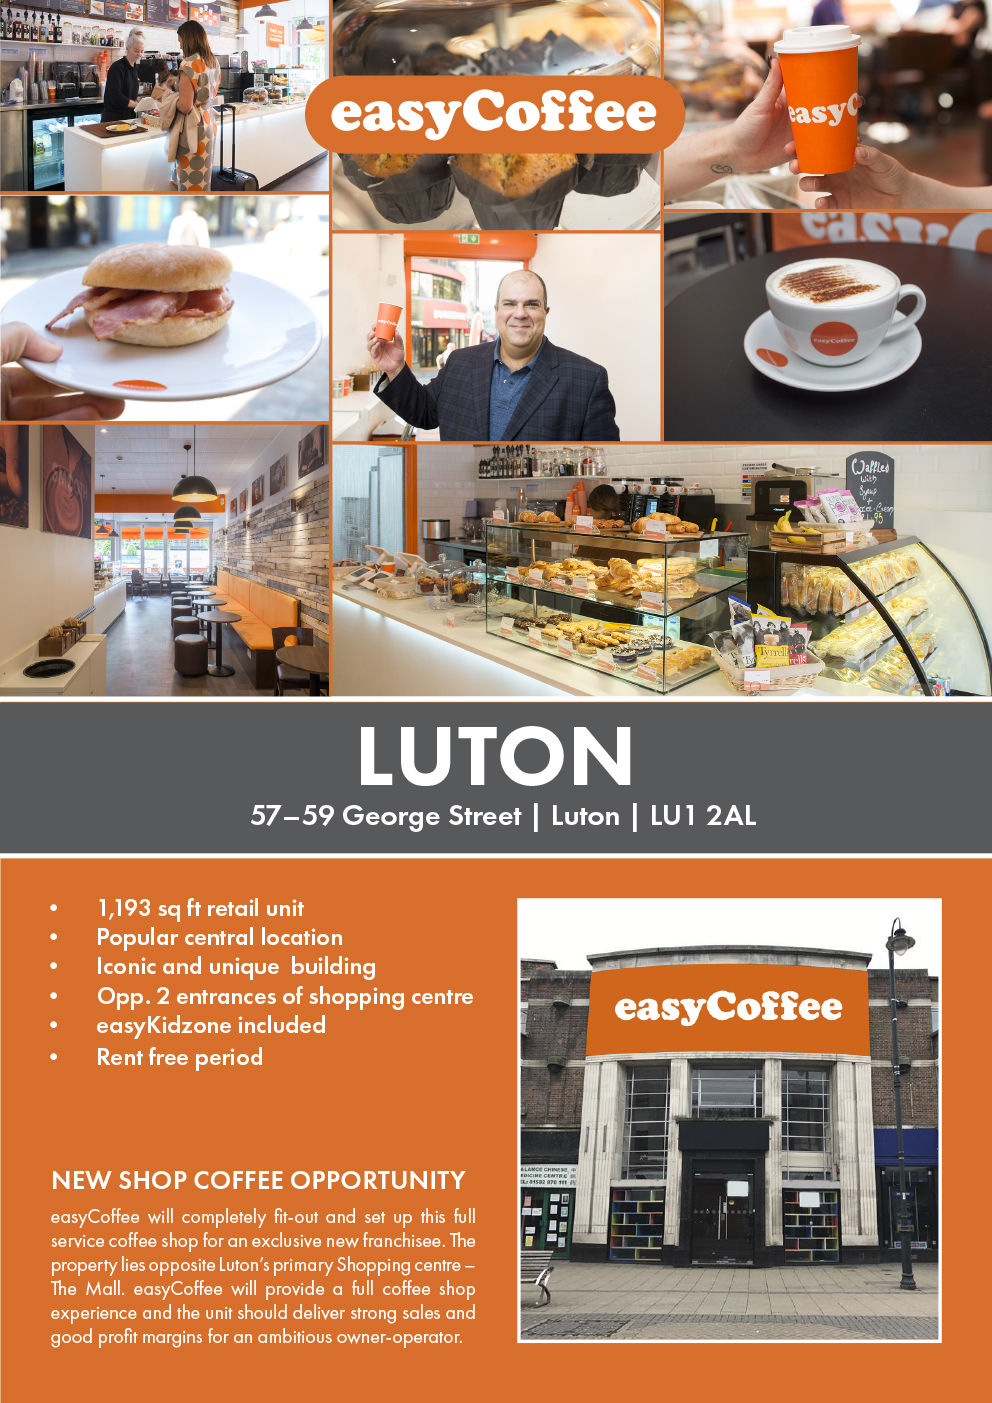 easyCoffee shop_Luton_1.jpg